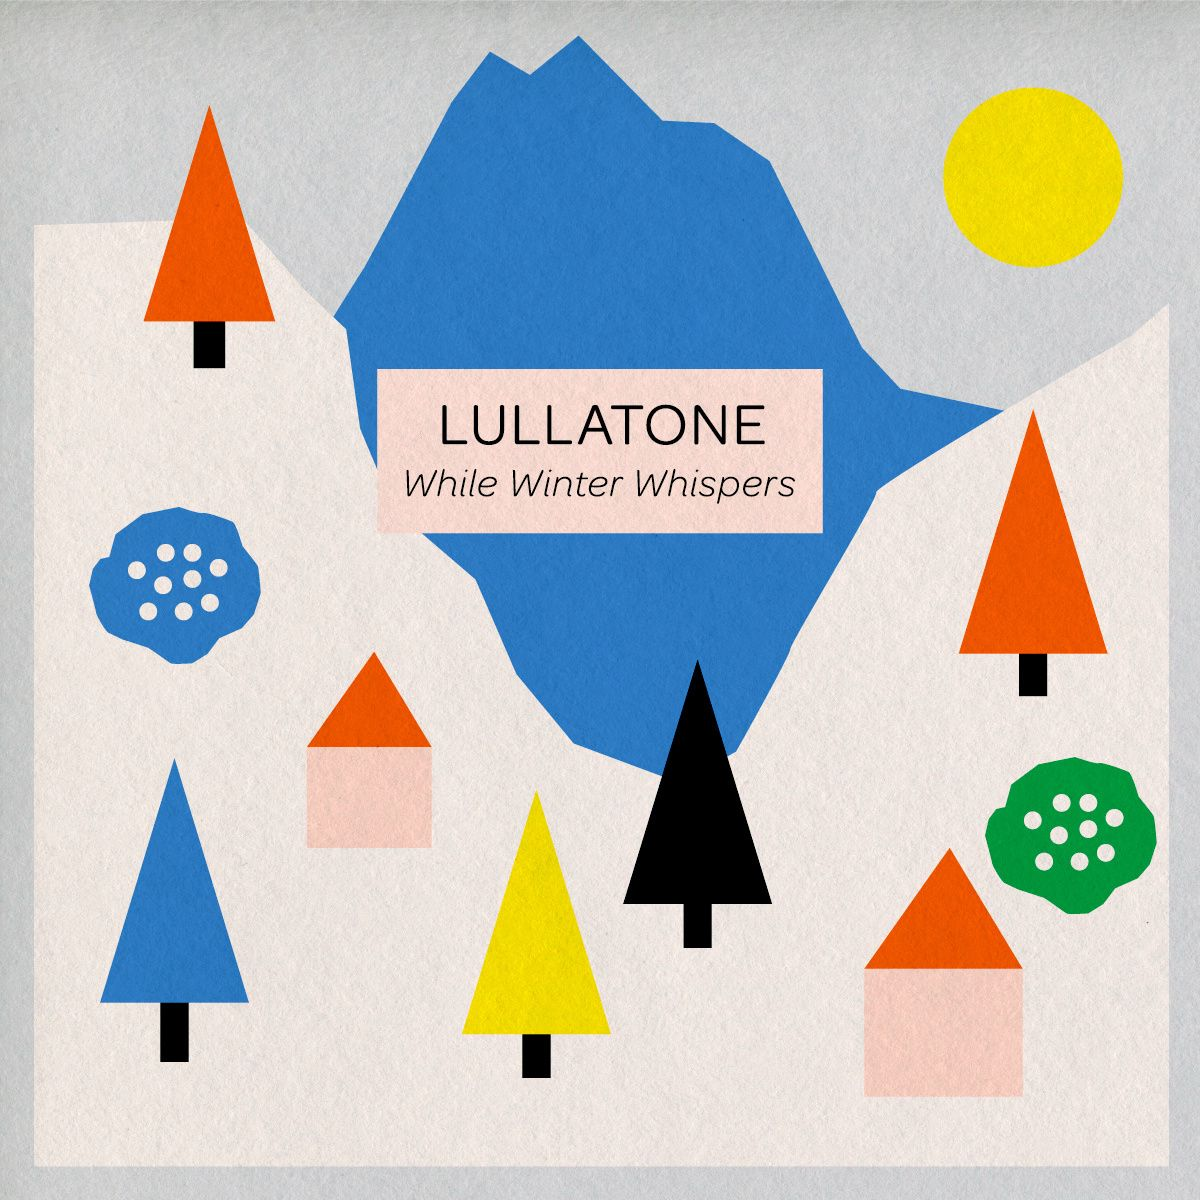 while winter whispers | Lullatone